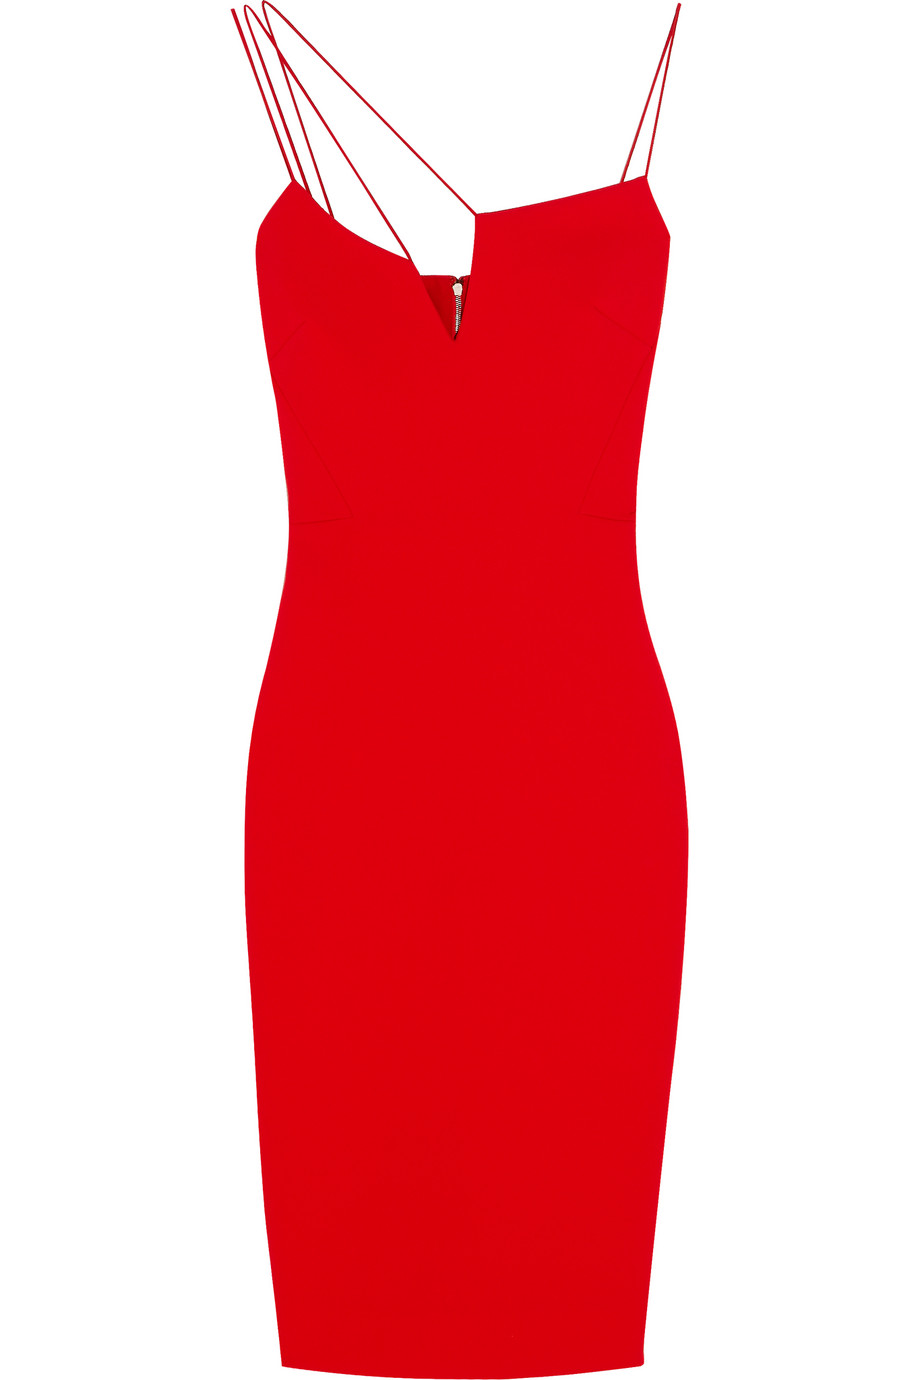 Victoria Beckham Crepe Dress, Red, Women's, Size: 6